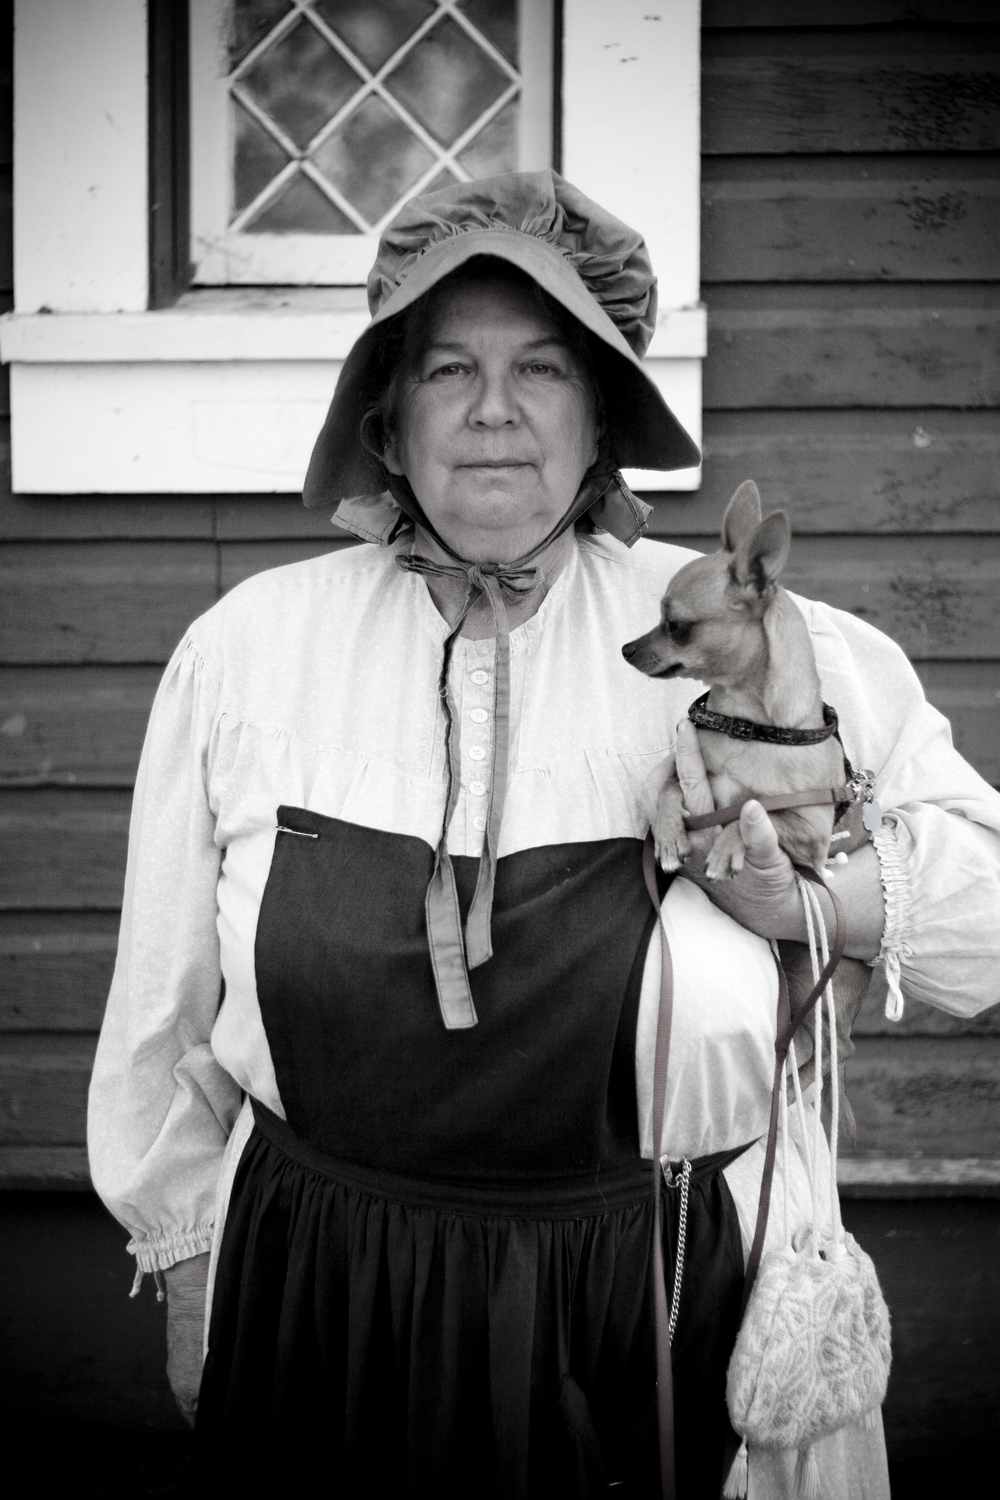 Charlotte Hopkins. Native Oregonian, runaway stagecoach survivor, hater of California, devoted Chihuahua lover.